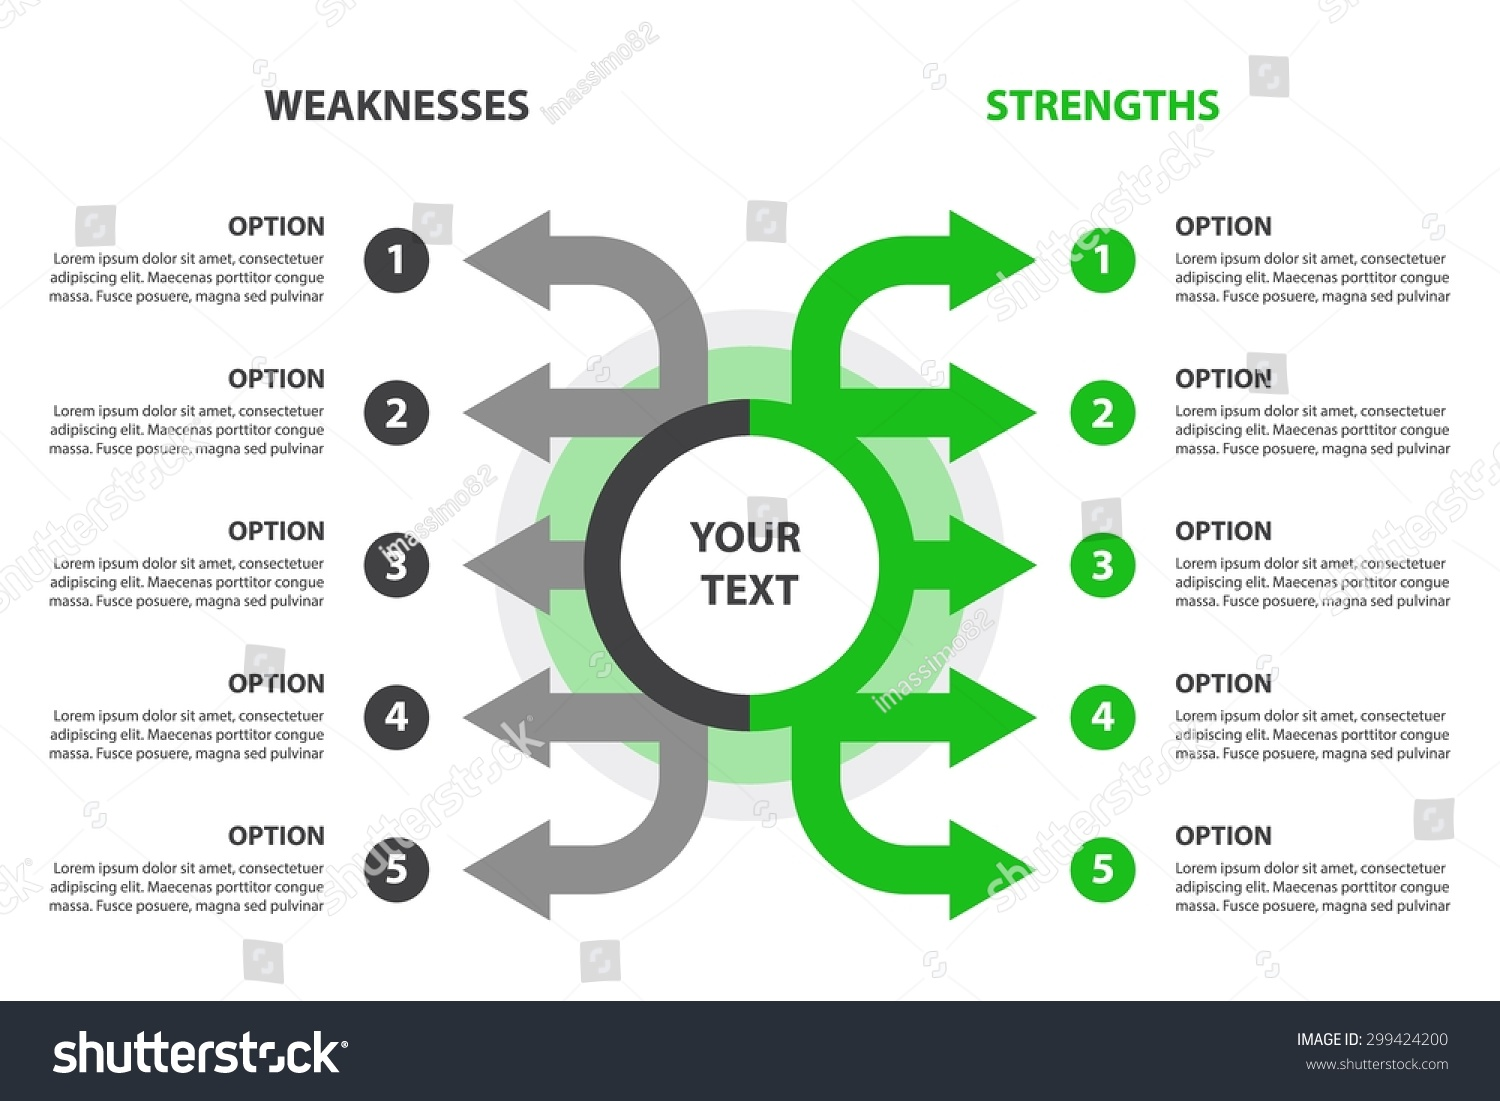 strengths weaknesses swot analysis design element stock vector strengths and weaknesses swot analysis design element 5 grey and green arrows template